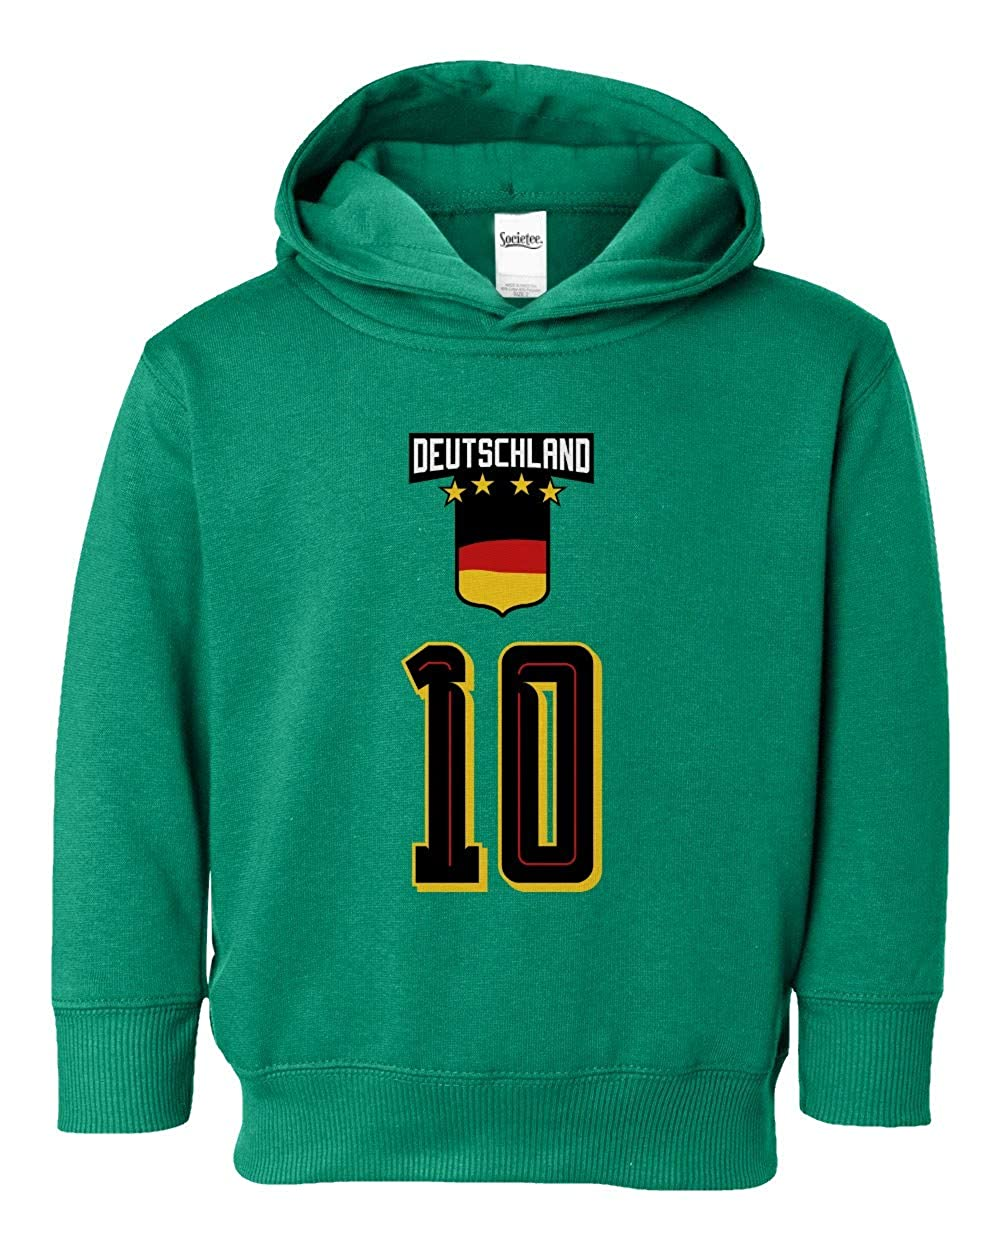 Societee Germany Shield /& Number Cool Girls Boys Toddler Hooded Sweatshirt